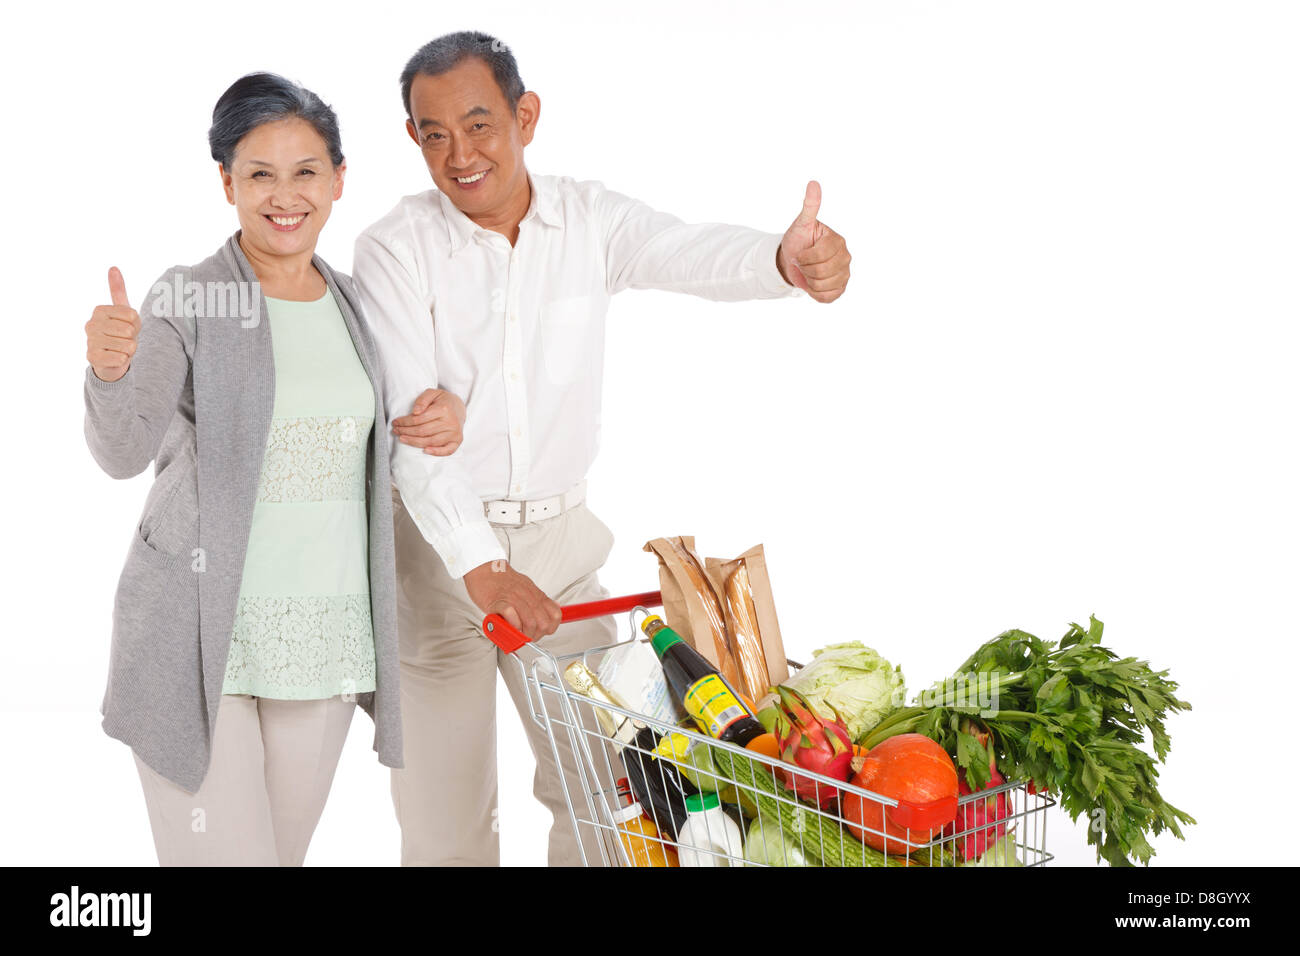 Old couple shopping with shopping cart - Stock Image